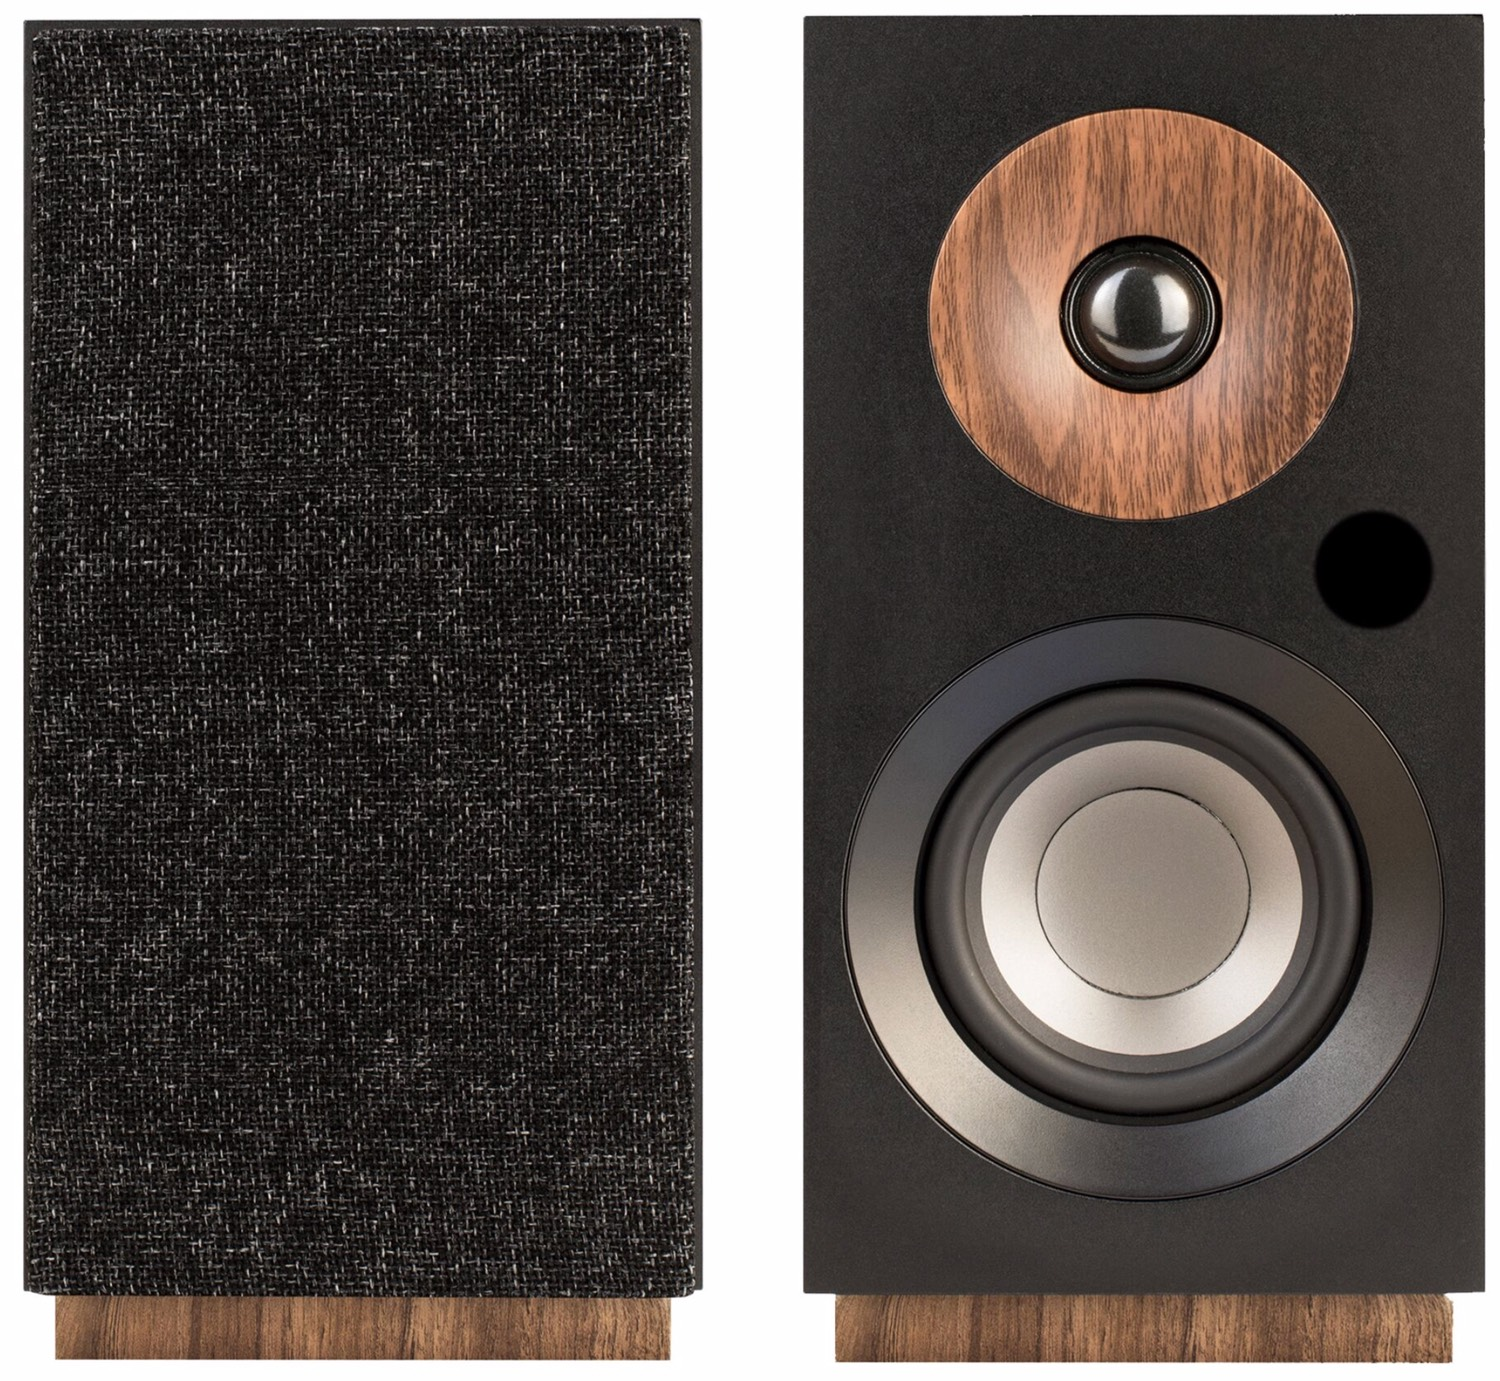 S801 Pm Powered Speakers From Jamo The Audiophile Man